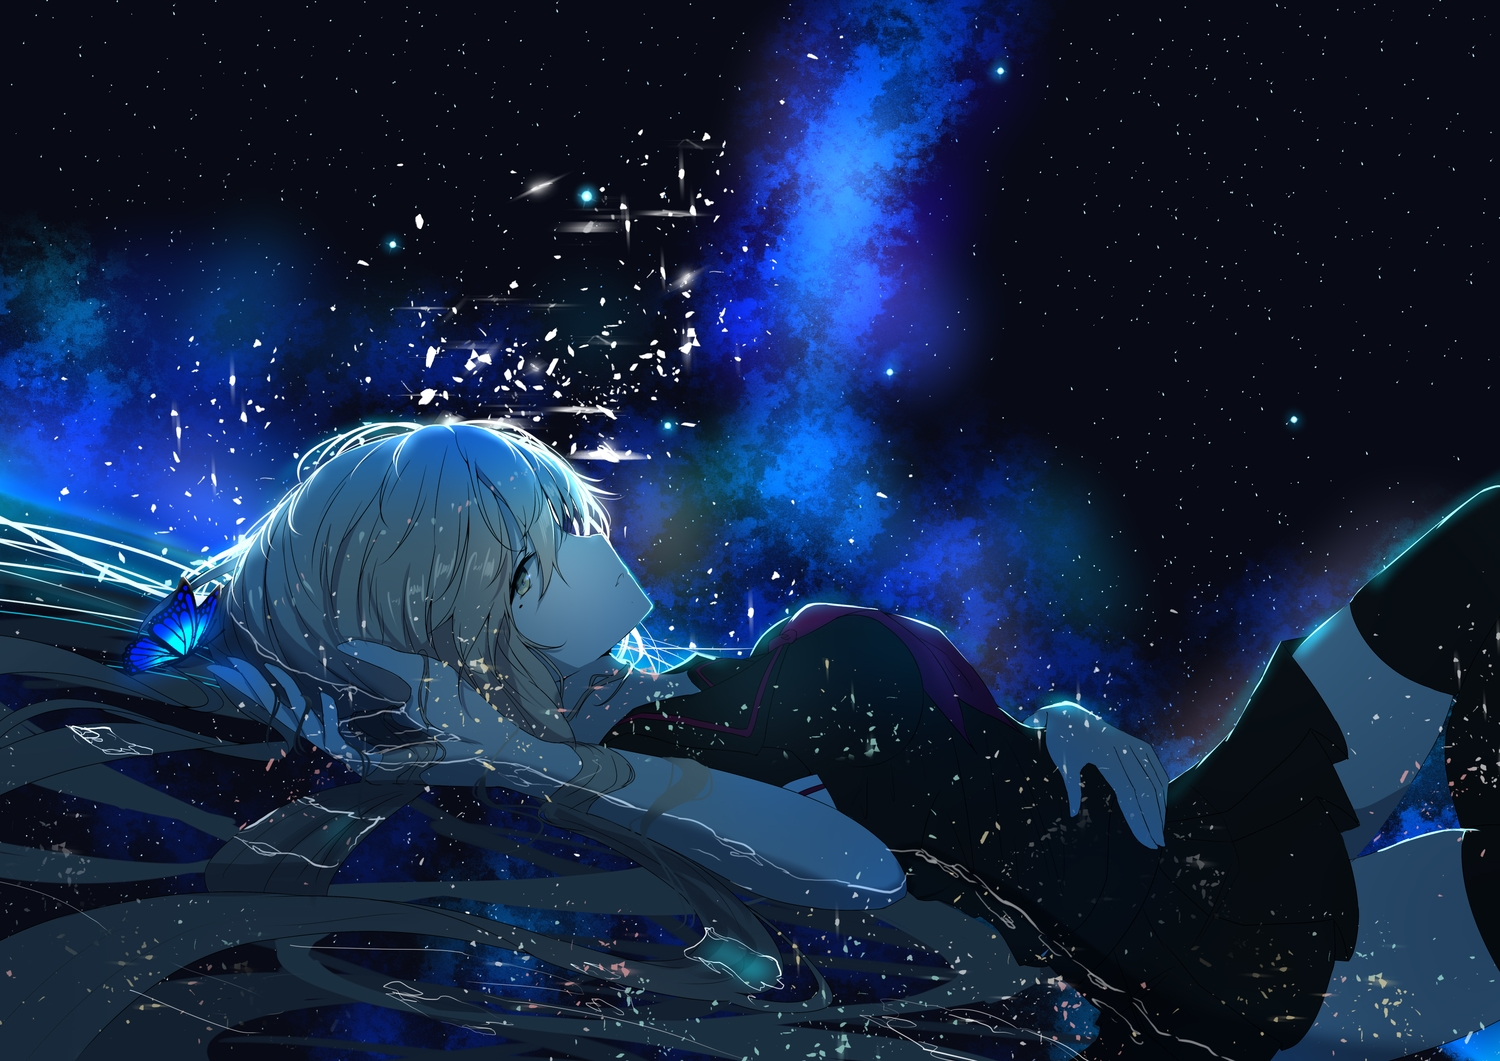 blonde_hair butterfly long_hair re:rin seifuku sky stars thighhighs vocaloid water yellow_eyes zettai_ryouiki